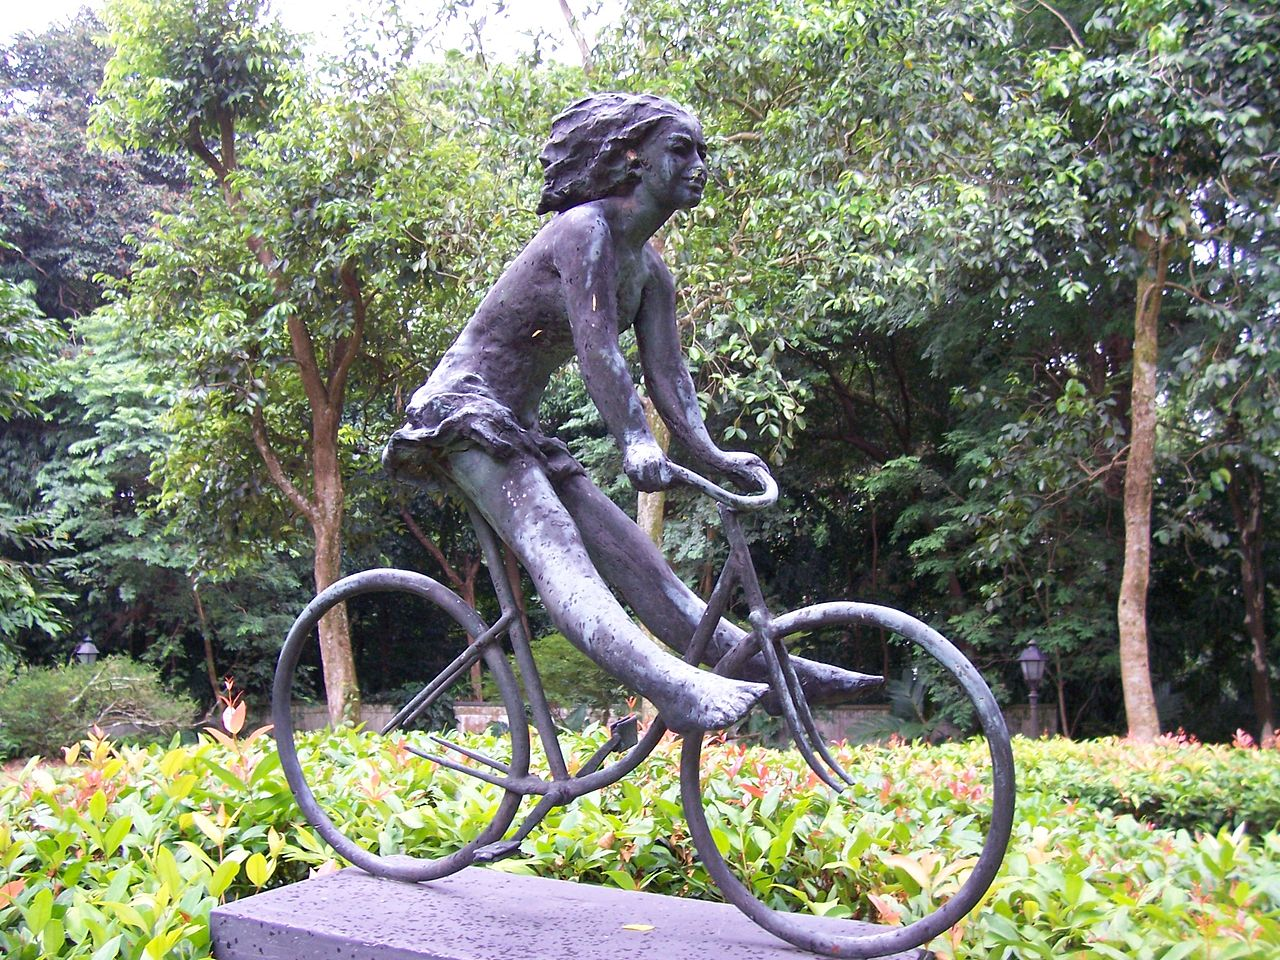 GirlonaBicycle-1987-SingaporeBotanicGardens-20060815.jpg